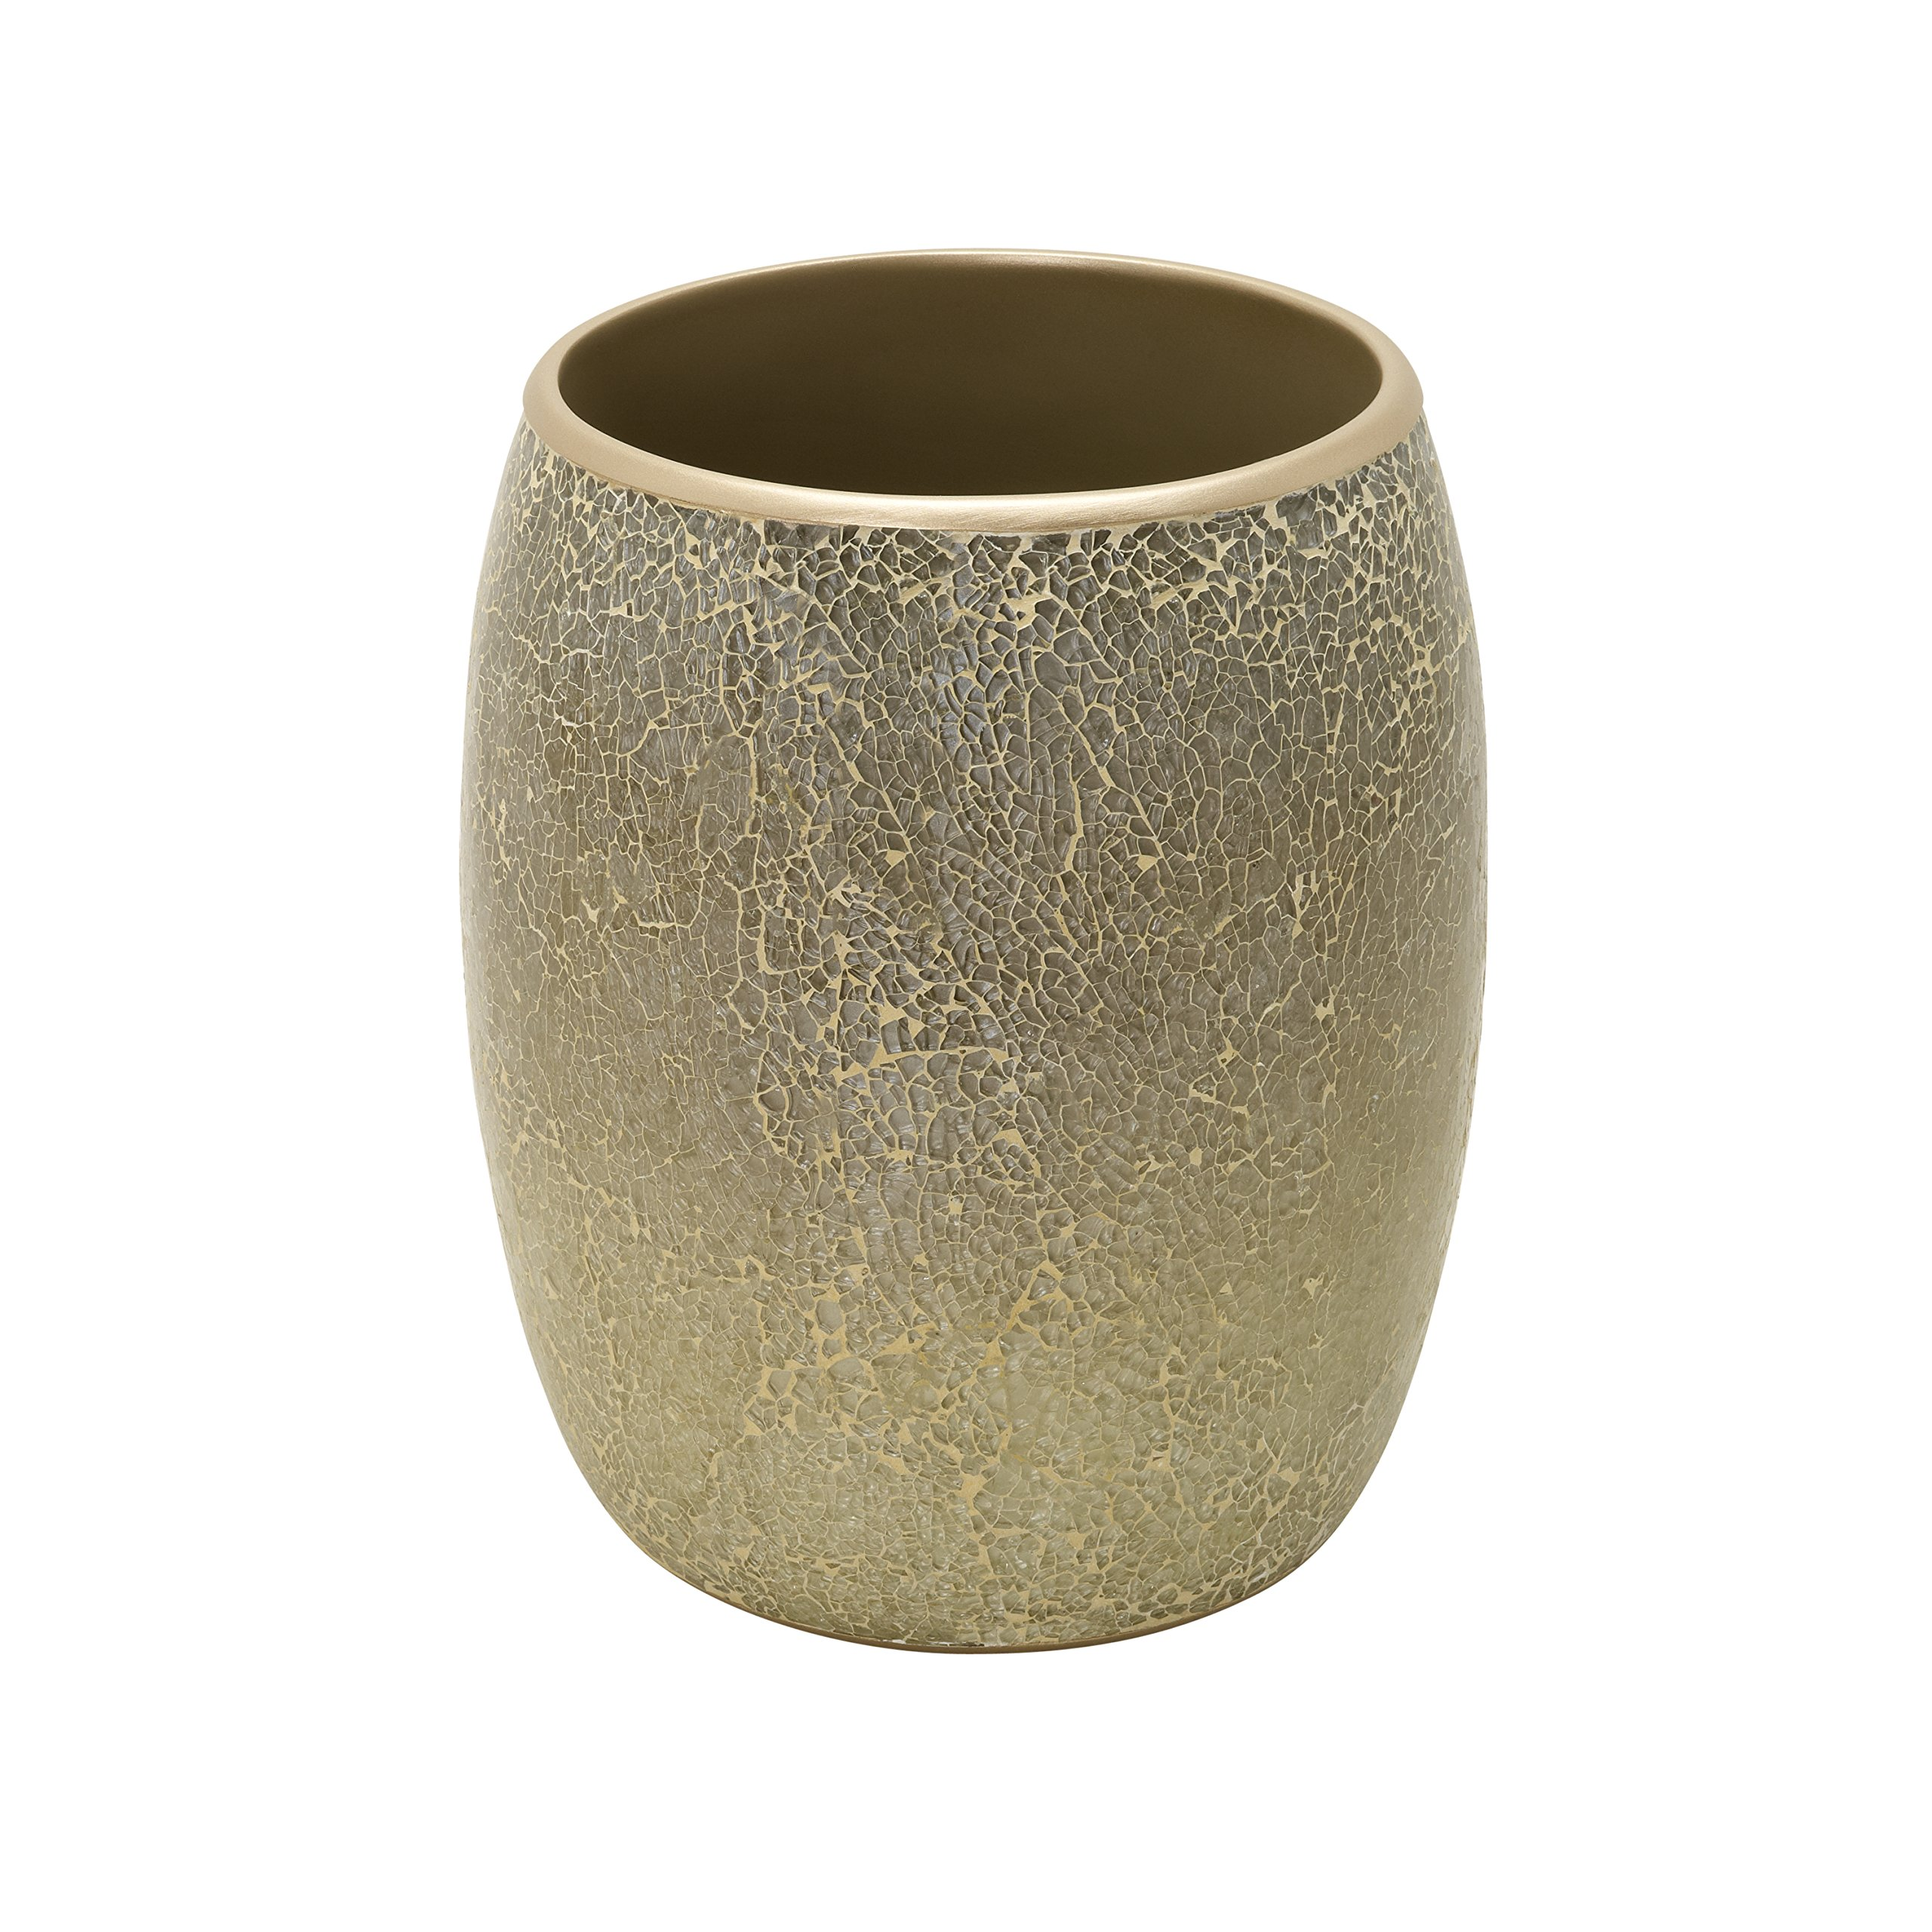 Zenna Home, India Ink Huntington Waste Basket, Gold Cracked Glass by Zenna Home (Image #1)